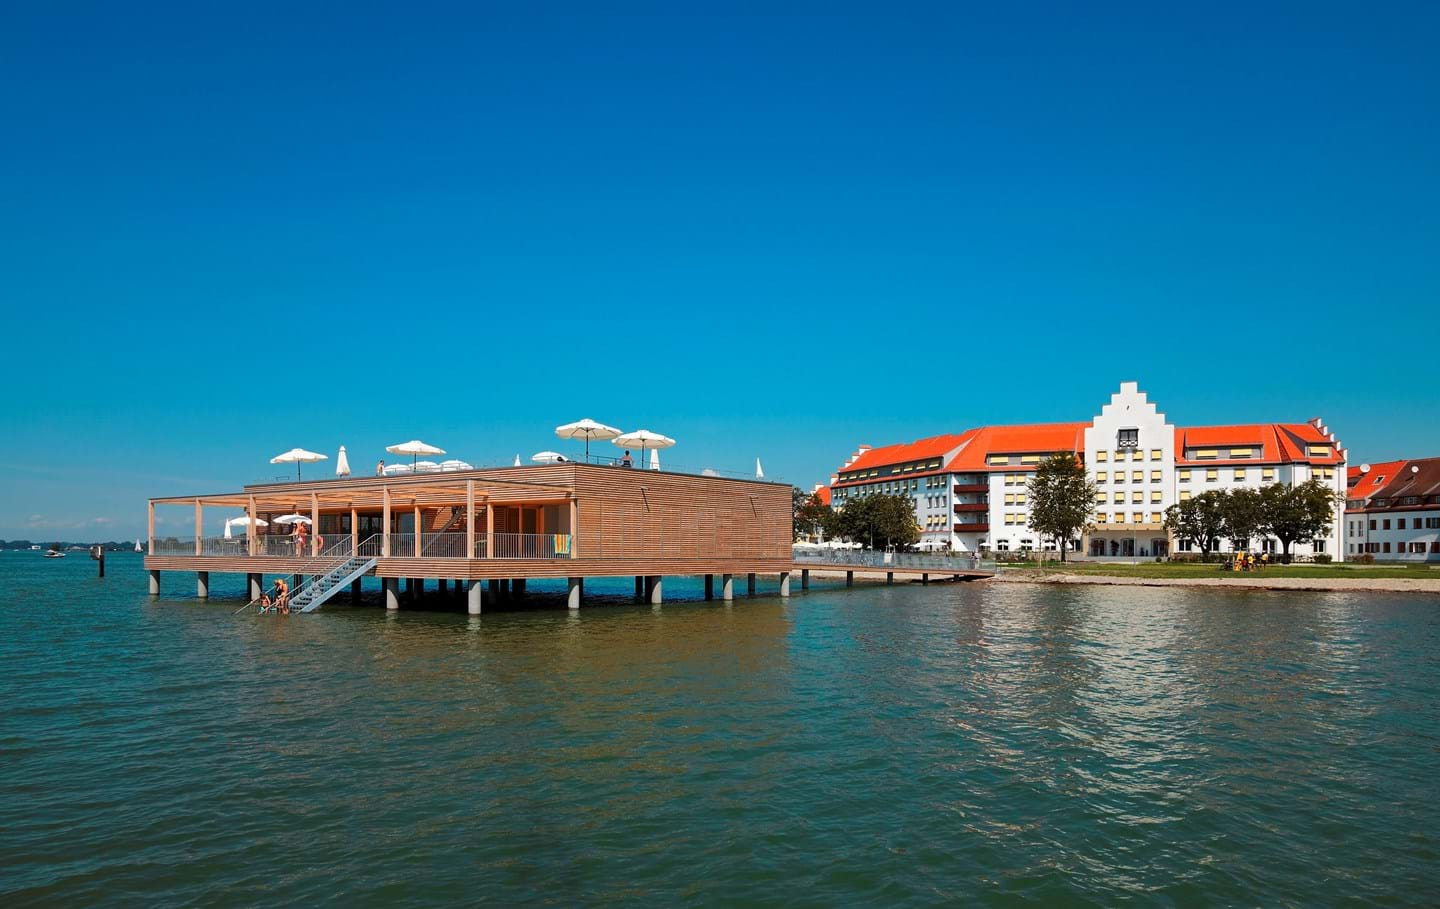 Accommodation in Bregenz